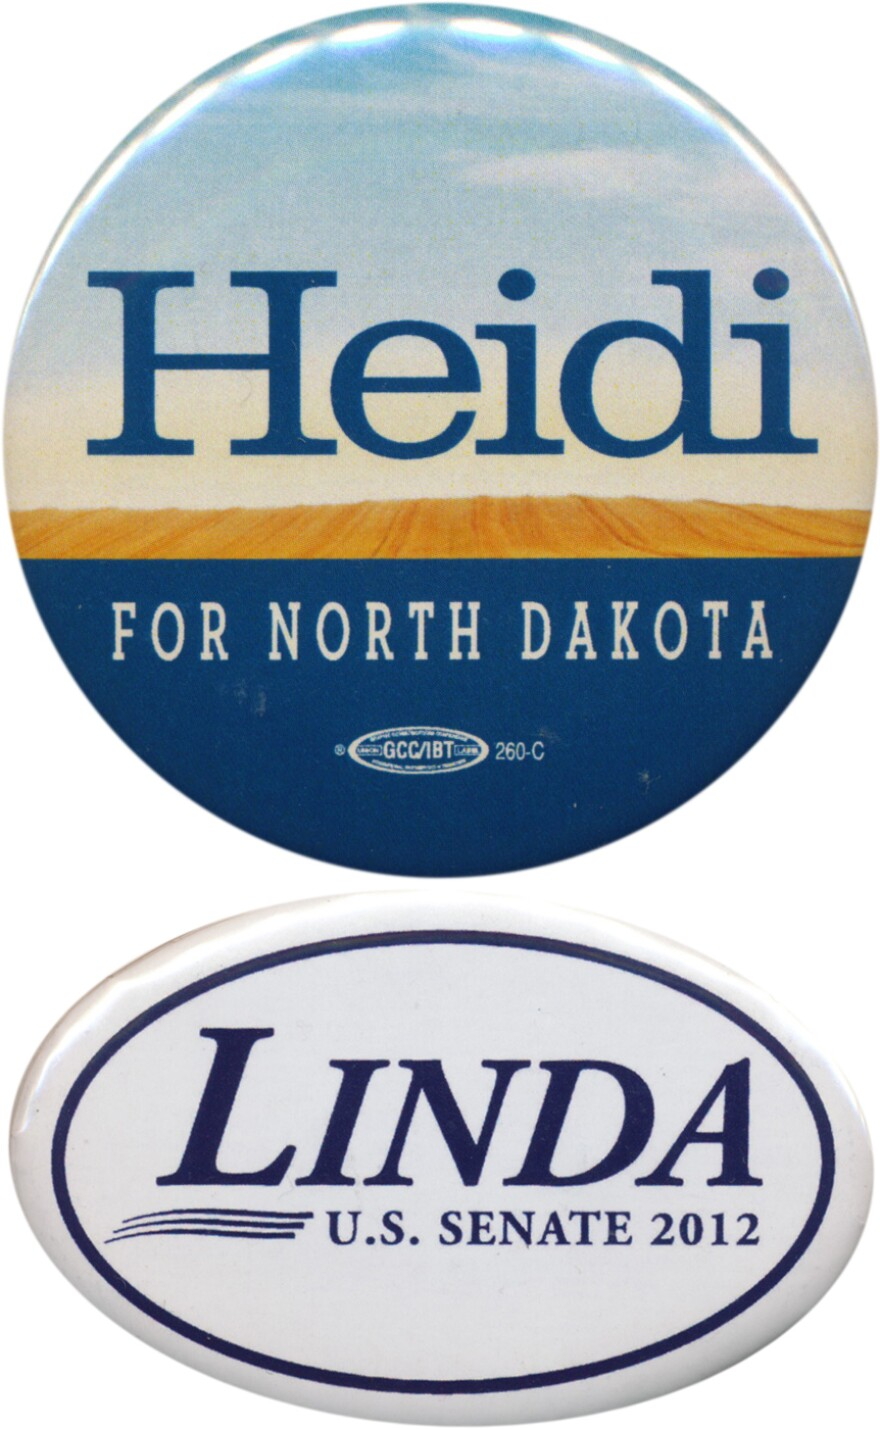 Heidi Heitkamp (D-ND) and Linda McMahon (R-CT) are running surprisingly better than anticipated.